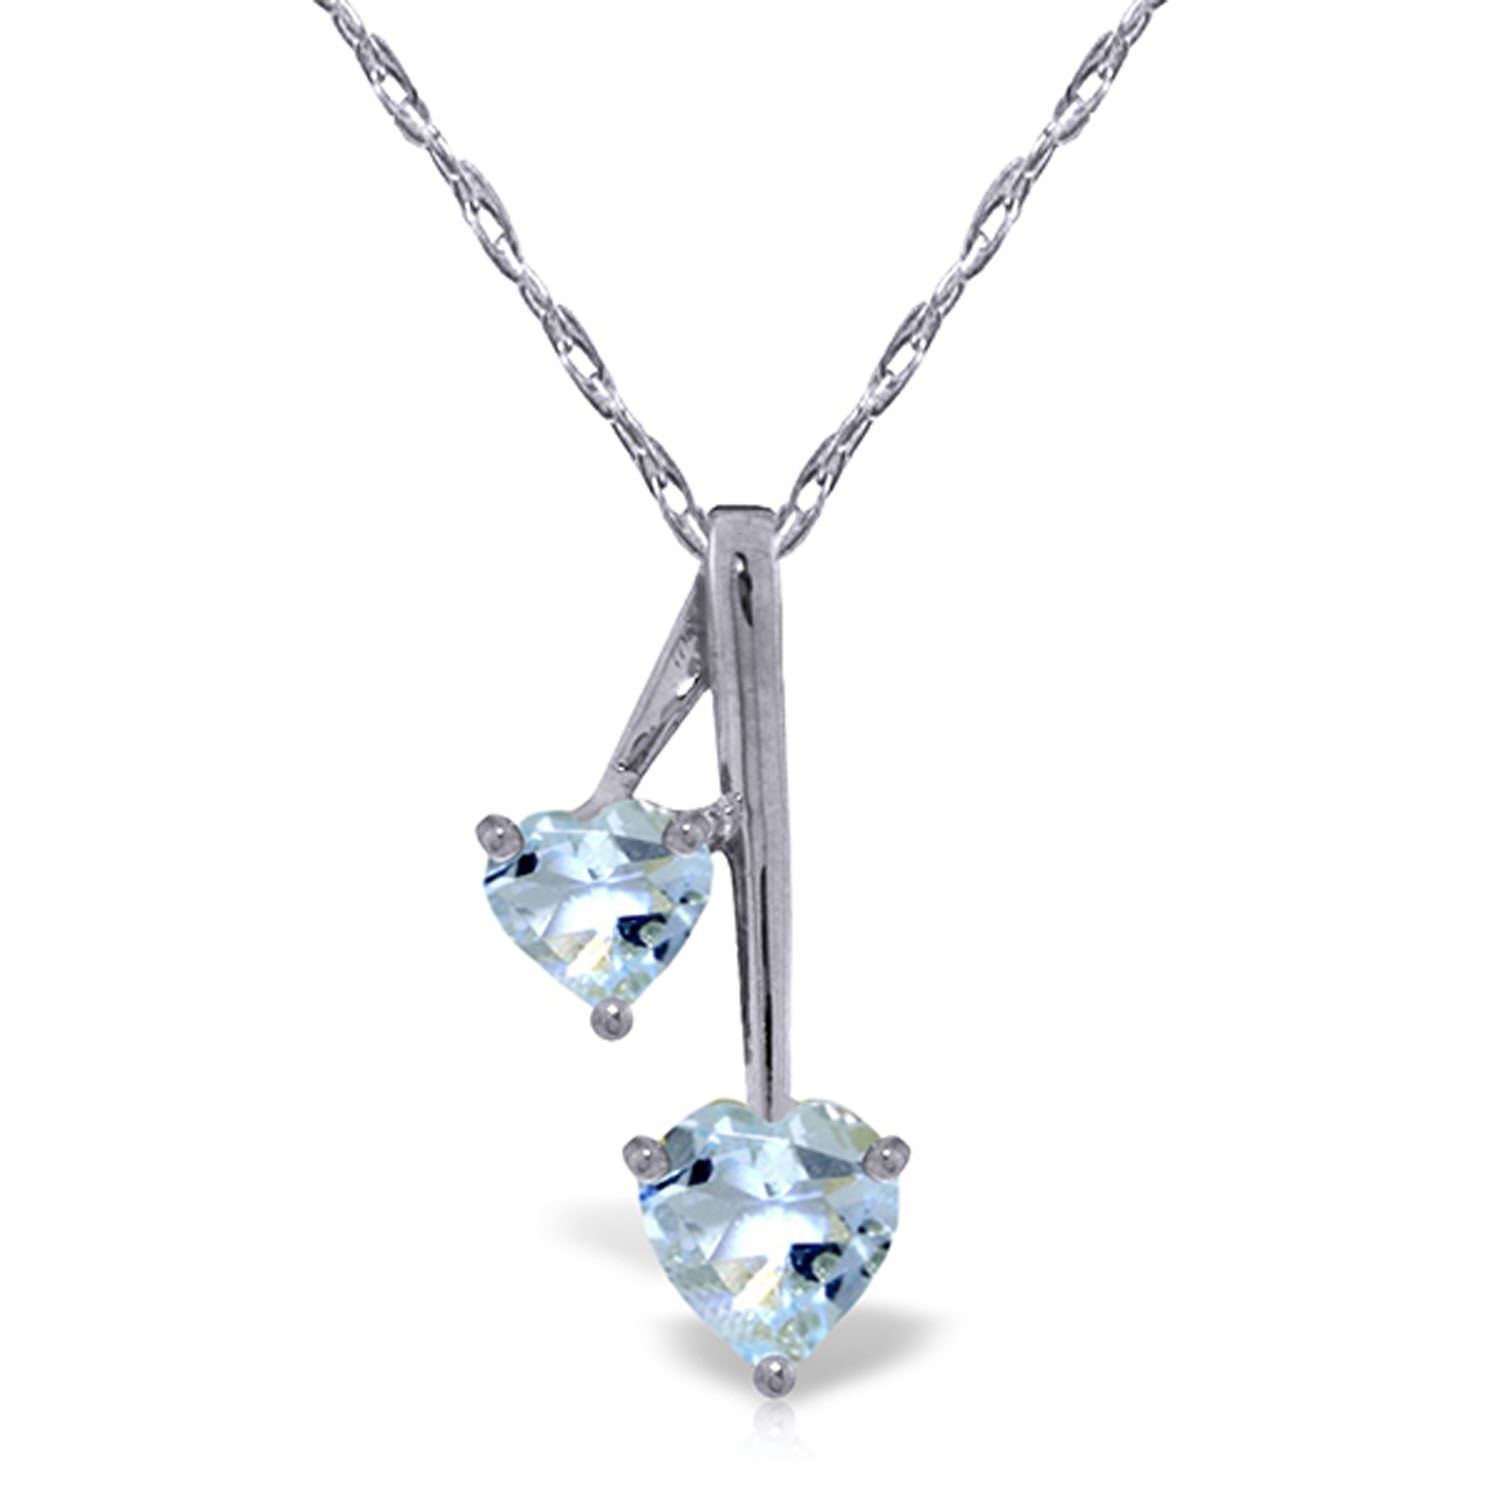 ALARRI 1.4 Carat 14K Solid White Gold Hearts Necklace Natural Aquamarine with 24 Inch Chain Length. by ALARRI